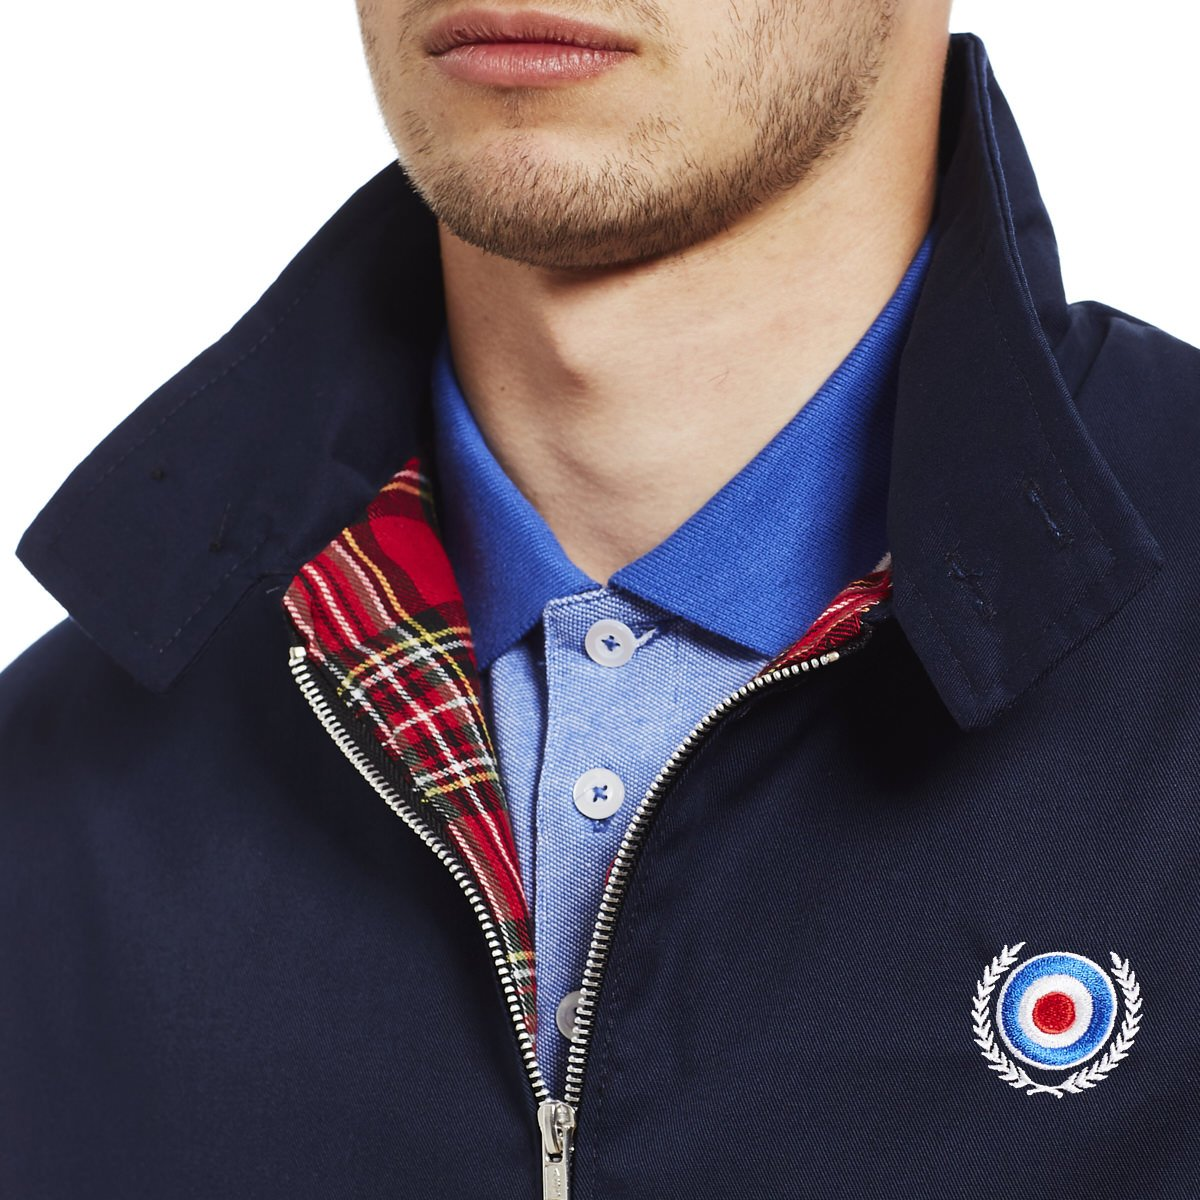 Mod Target Scooter Skin Ska Harrington Chaqueta de Hombre by 45REVS.